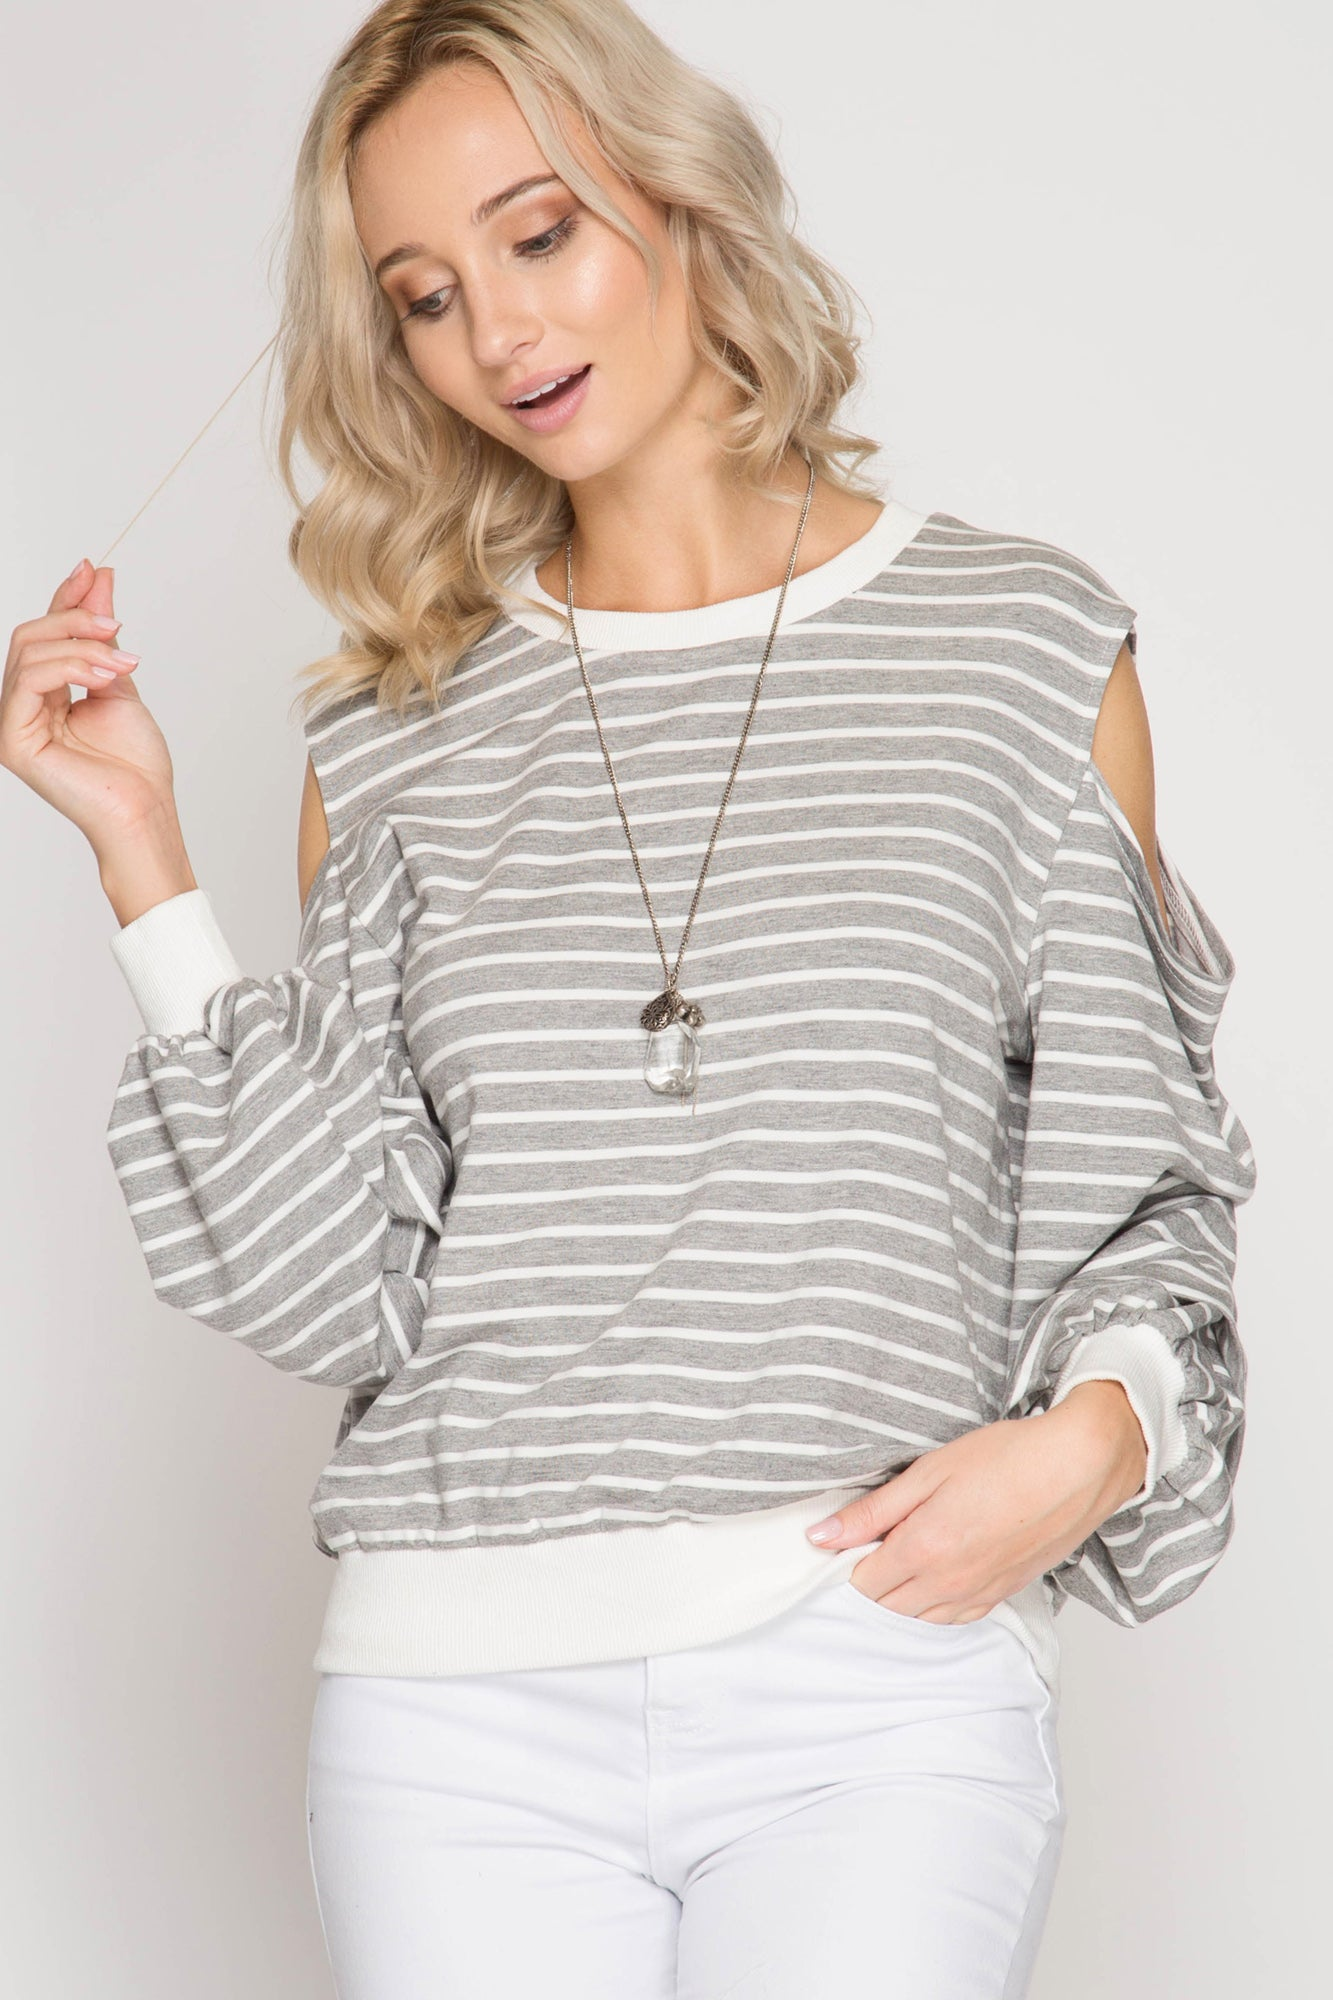 Cold Shoulder Grey Striped Top - aheadofthecurve-gifts